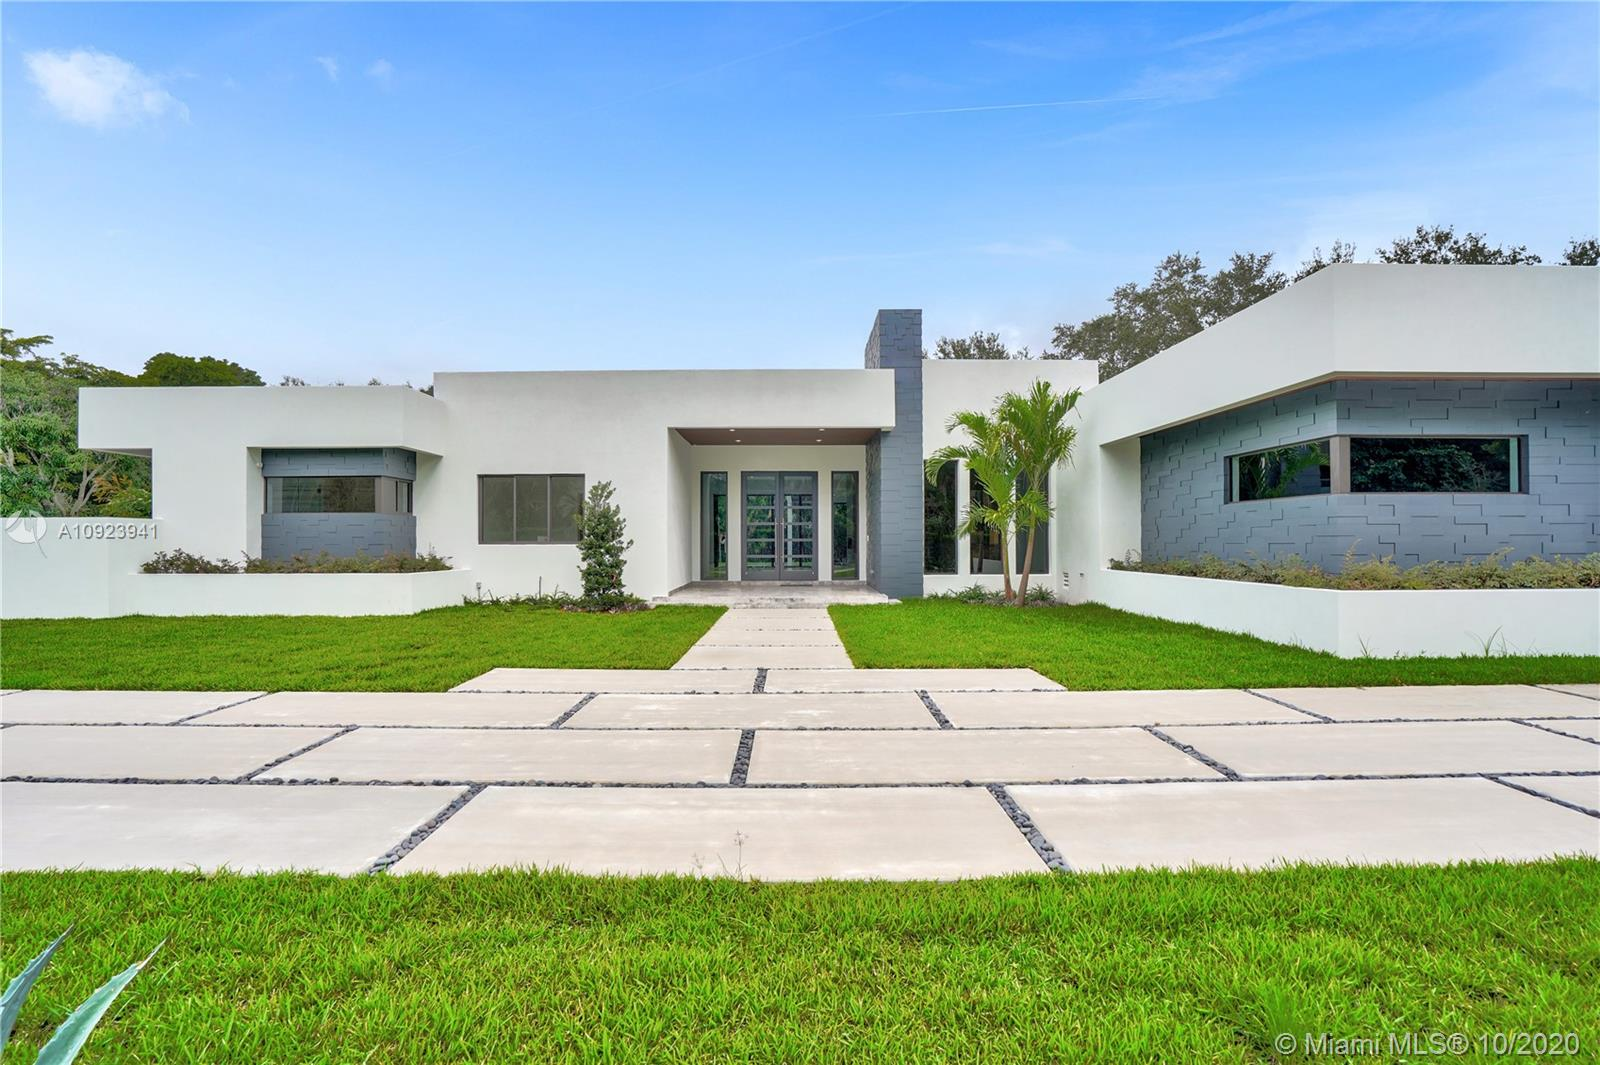 New Modern/Contemporary Home in Desirable North Pinecrest situated on a 34k SF corner lot W/ a total of 6880 SF of construction. This Luxury home showcases 6BR and 7.5BA with 5,422 SF of Living area. Featuring a Gourmet Kitchen W/ Miele Appliances, Great for entertaining or your private retreat with open floor Plan that flows directly to a huge terrace, Pool, Jacuzzi and Cabana area which includes outdoor summer kitchen. The Master Suite features grand entrance, 2 large walk-in closets w/ a stunning Marble bathroom, a soaking tub, double sinks, large shower, & private terrace. Living area has LED fireplace, Wine Cellar and is smart house ready. Maid's quarters, spacious 3 car garage w/ side entrance and large driveway for ample parking. No details overlooked in this Home, easy to show.